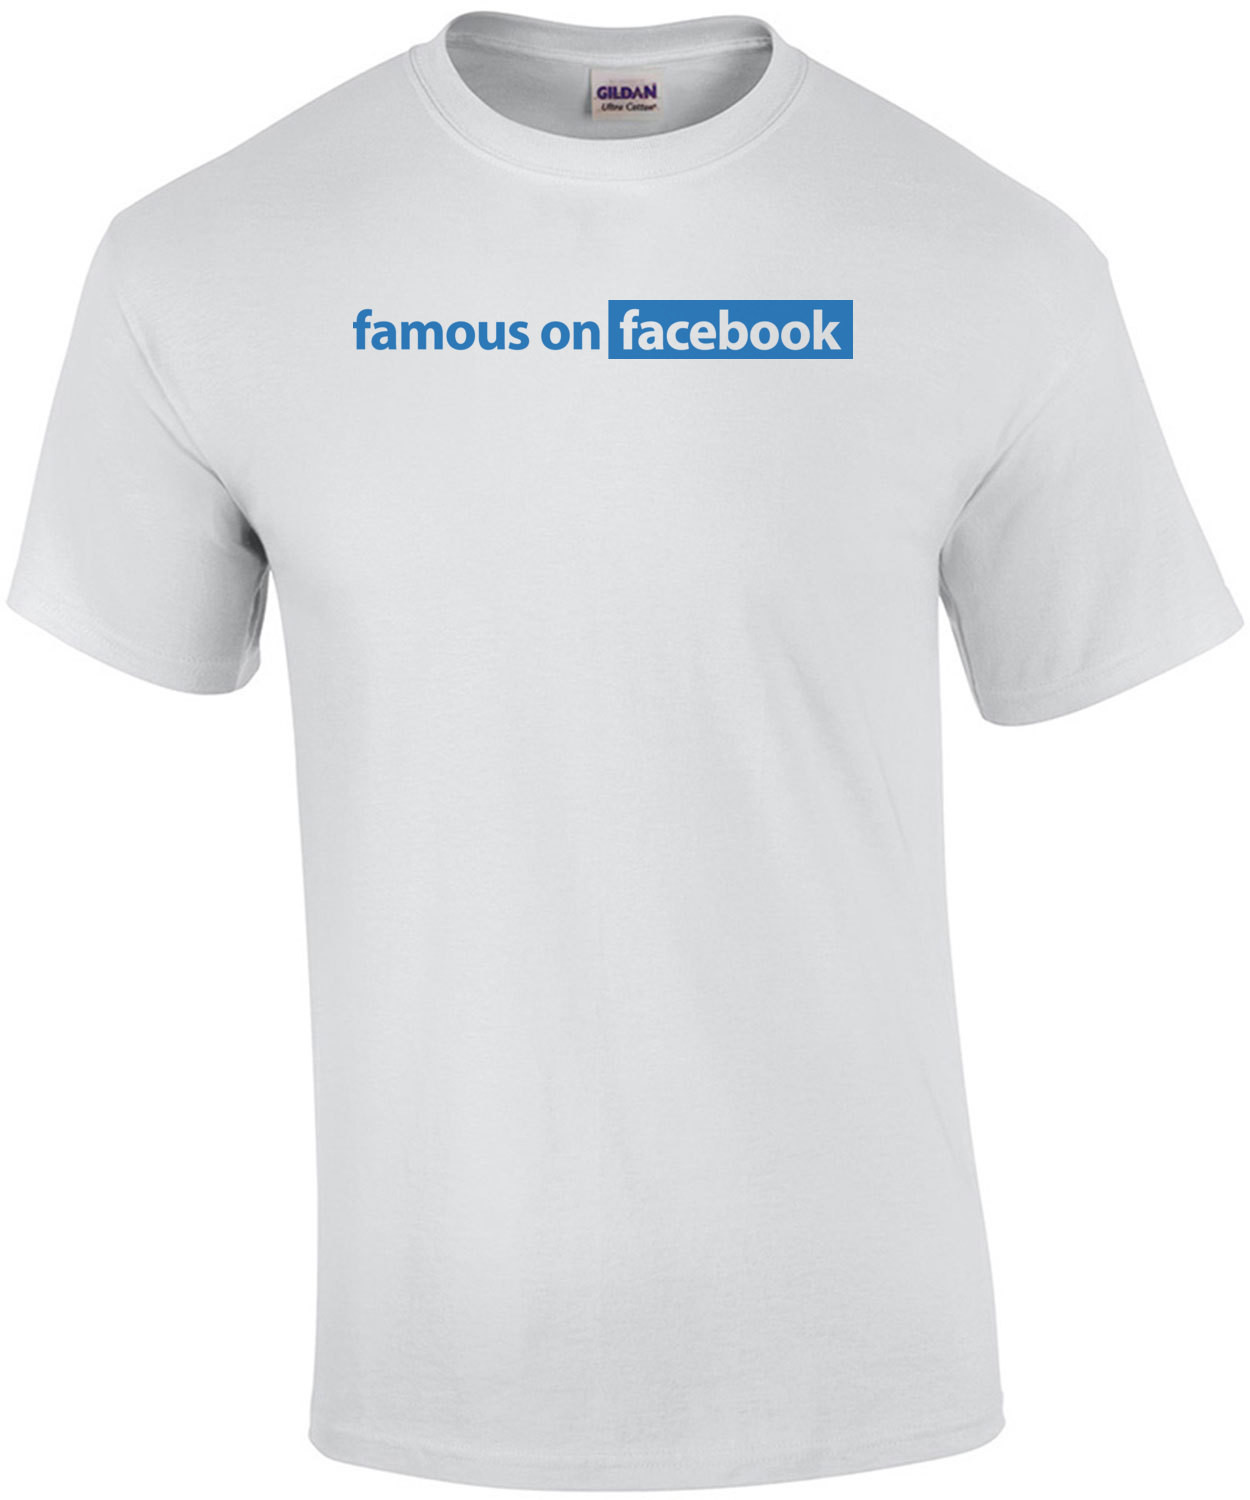 Famous Of Facebook Kids Shirt